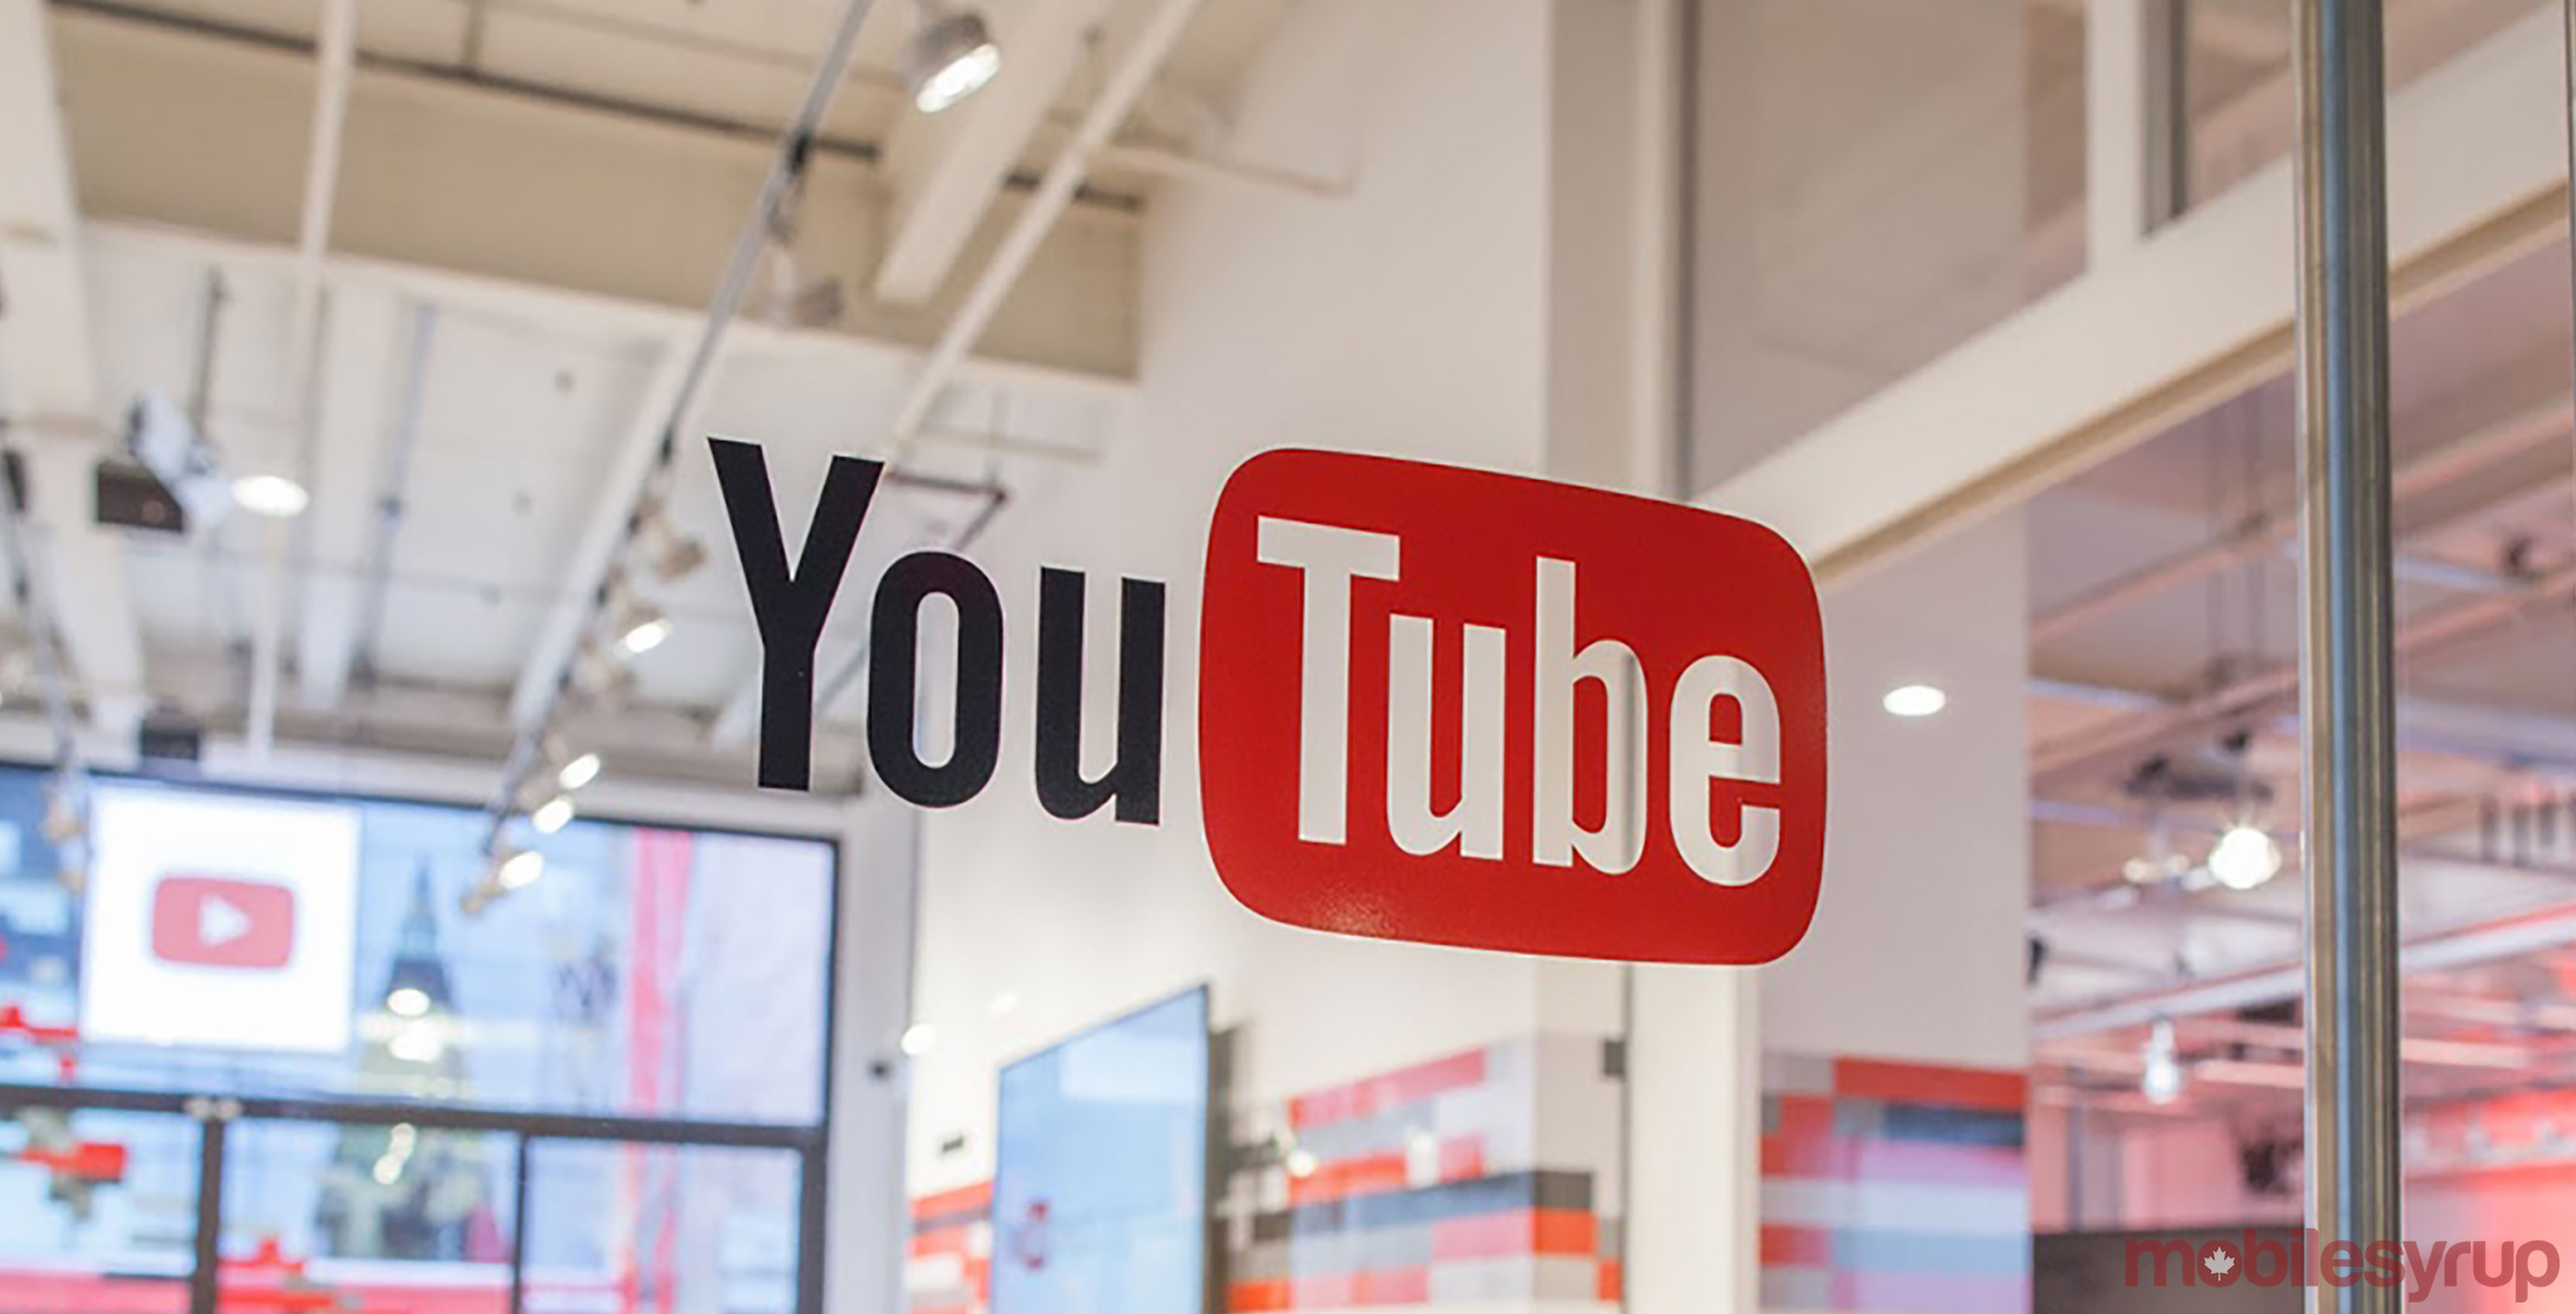 YouTube is rolling out skippable ad breaks